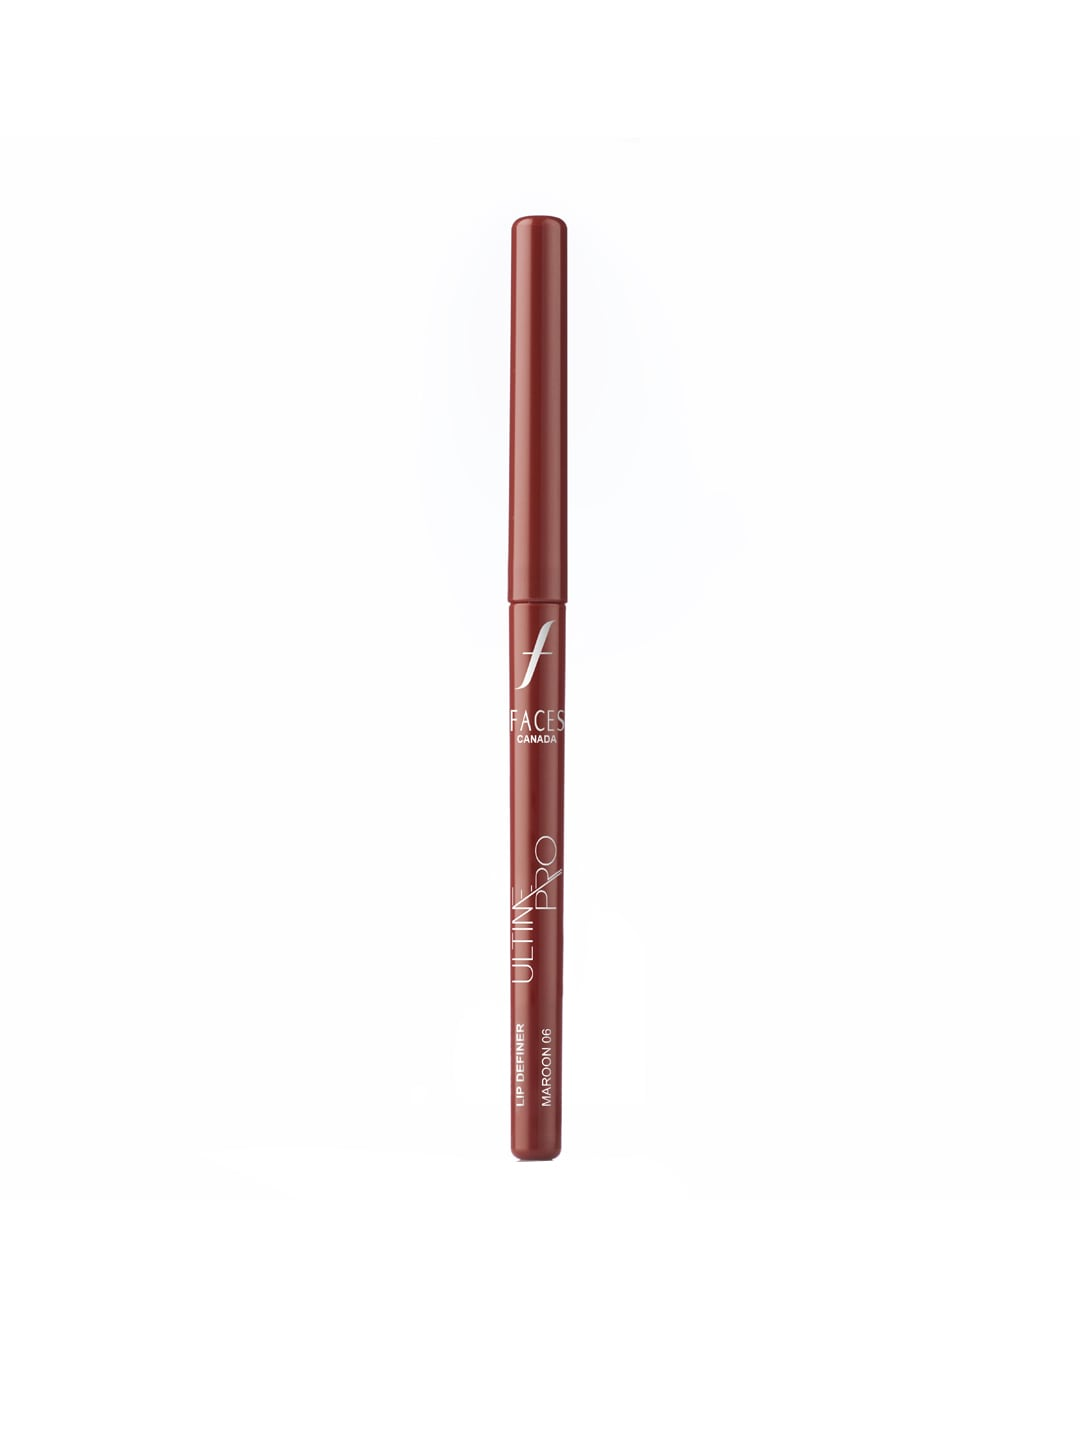 Faces Ultime Pro Maroon 06 Lip Definer image